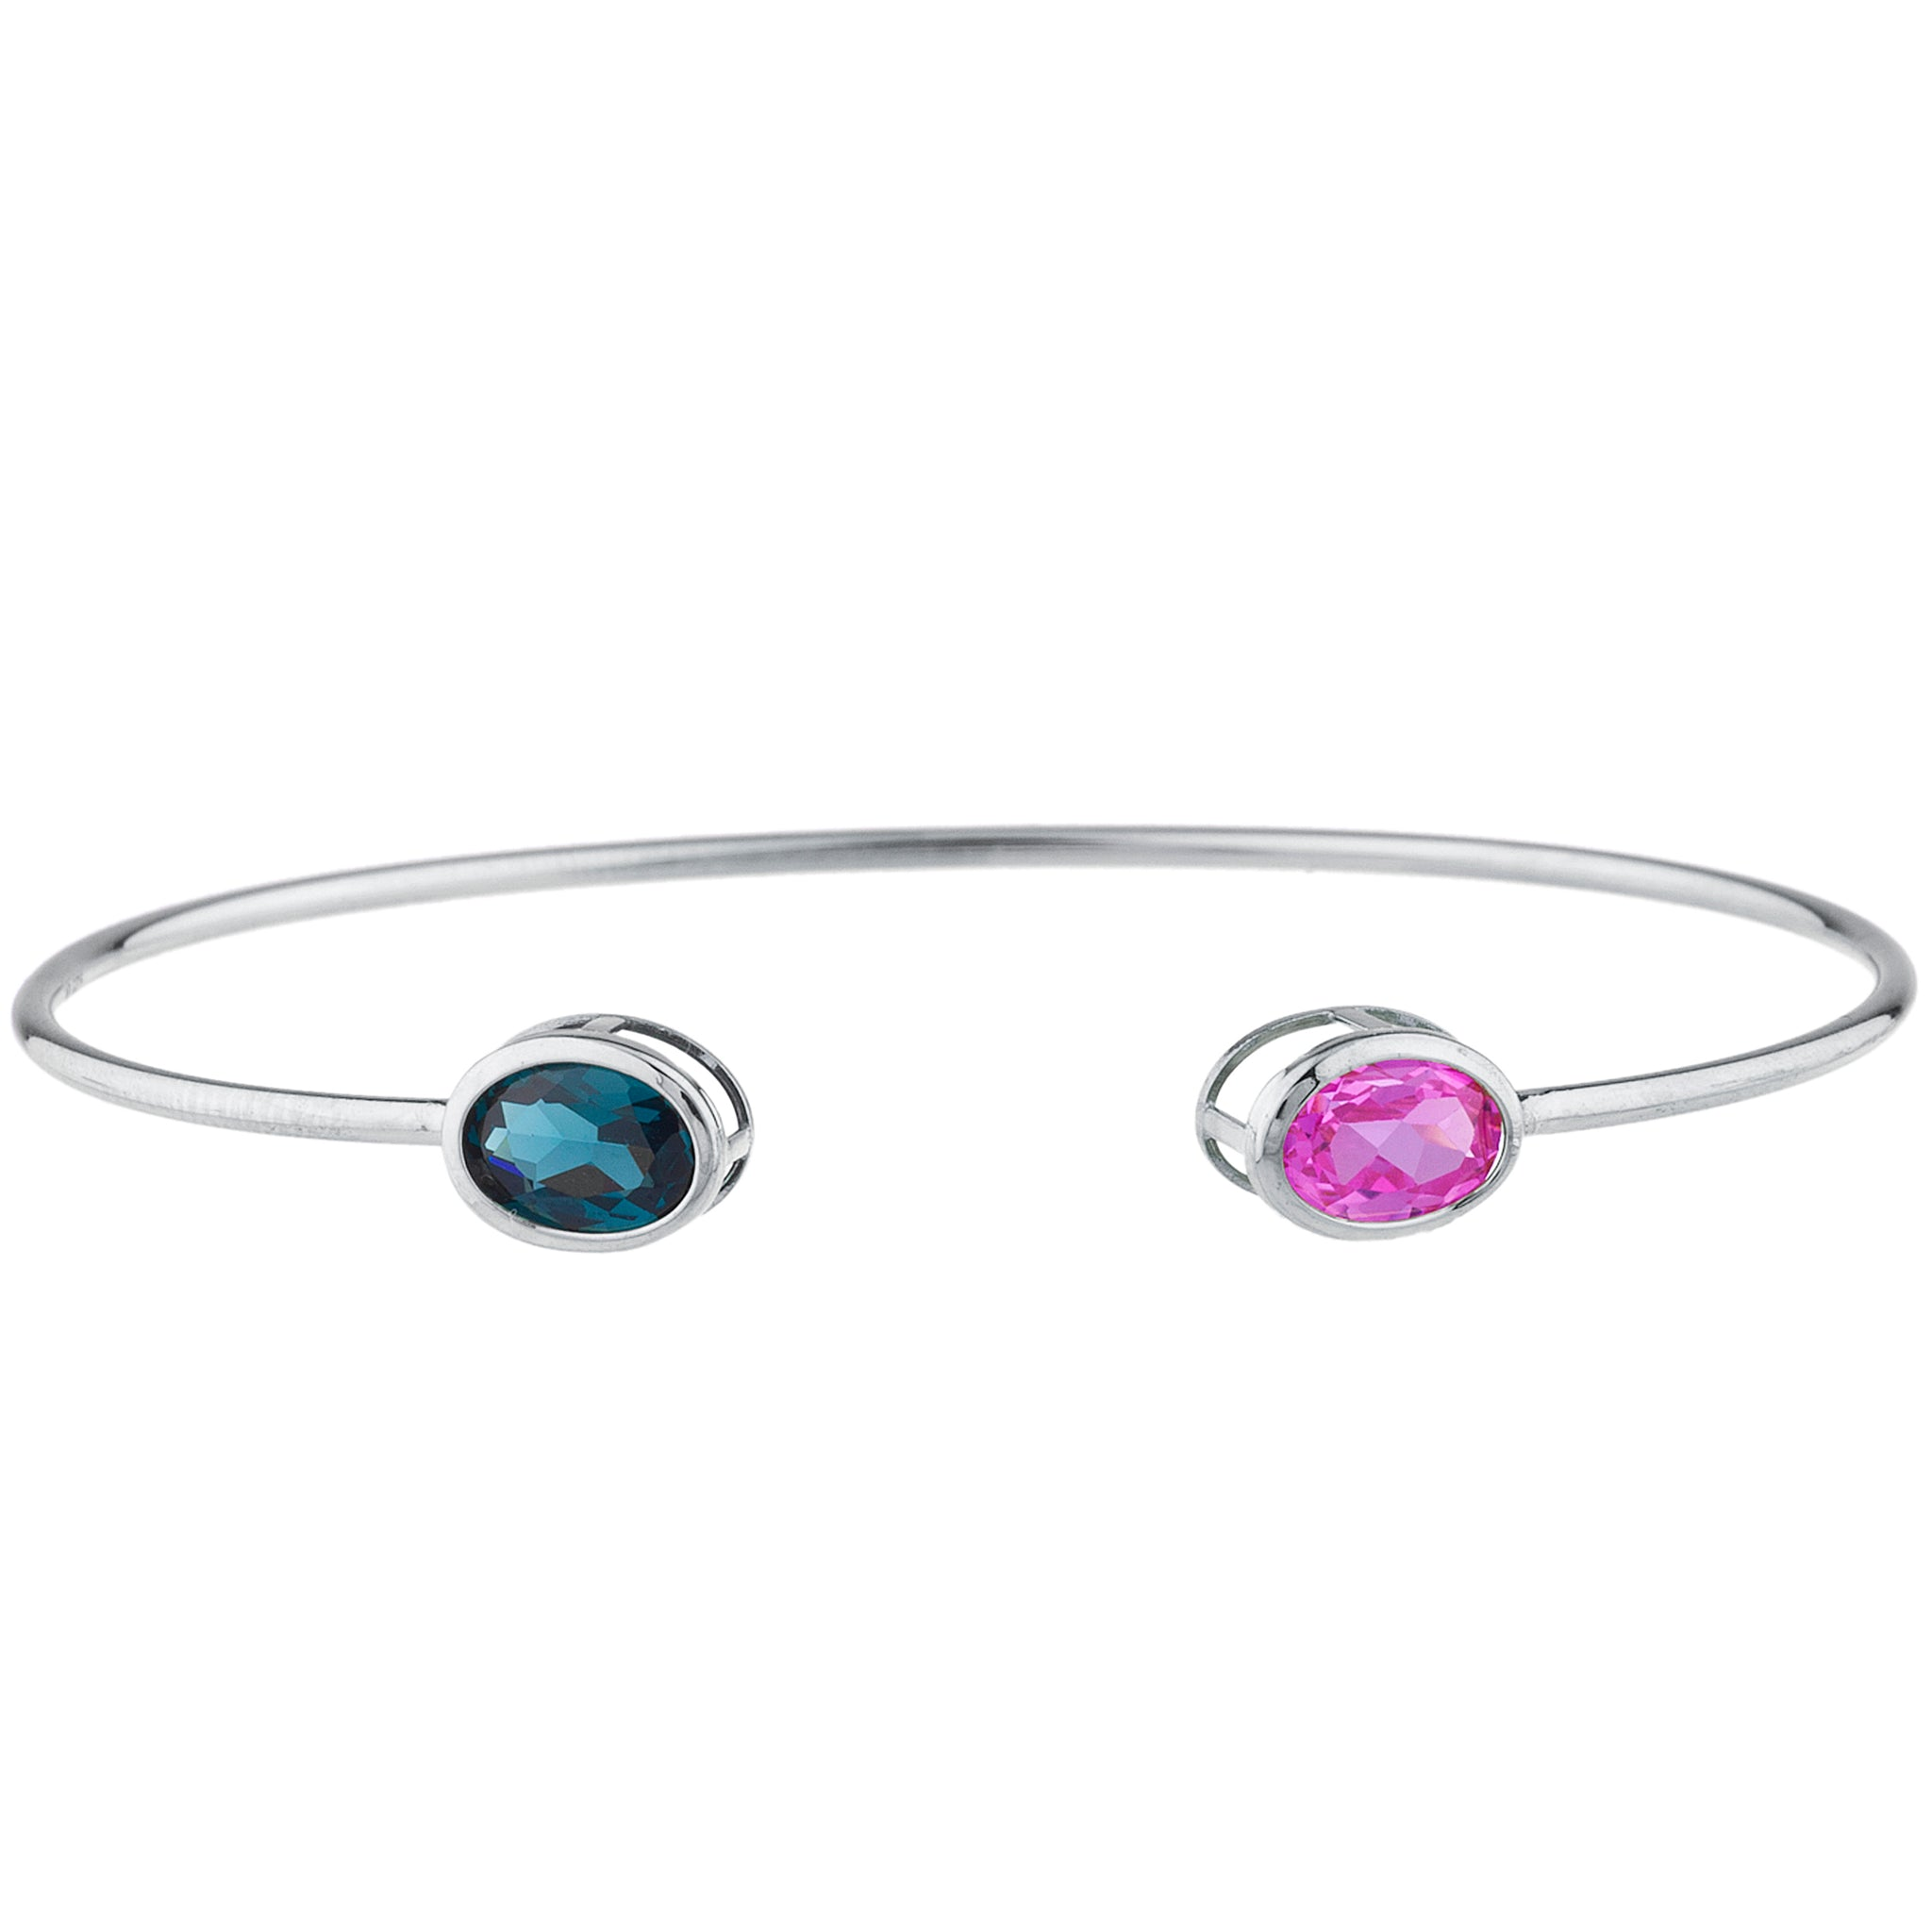 Pink Sapphire & London Blue Topaz Oval Bezel Bangle Bracelet .925 Sterling Silver